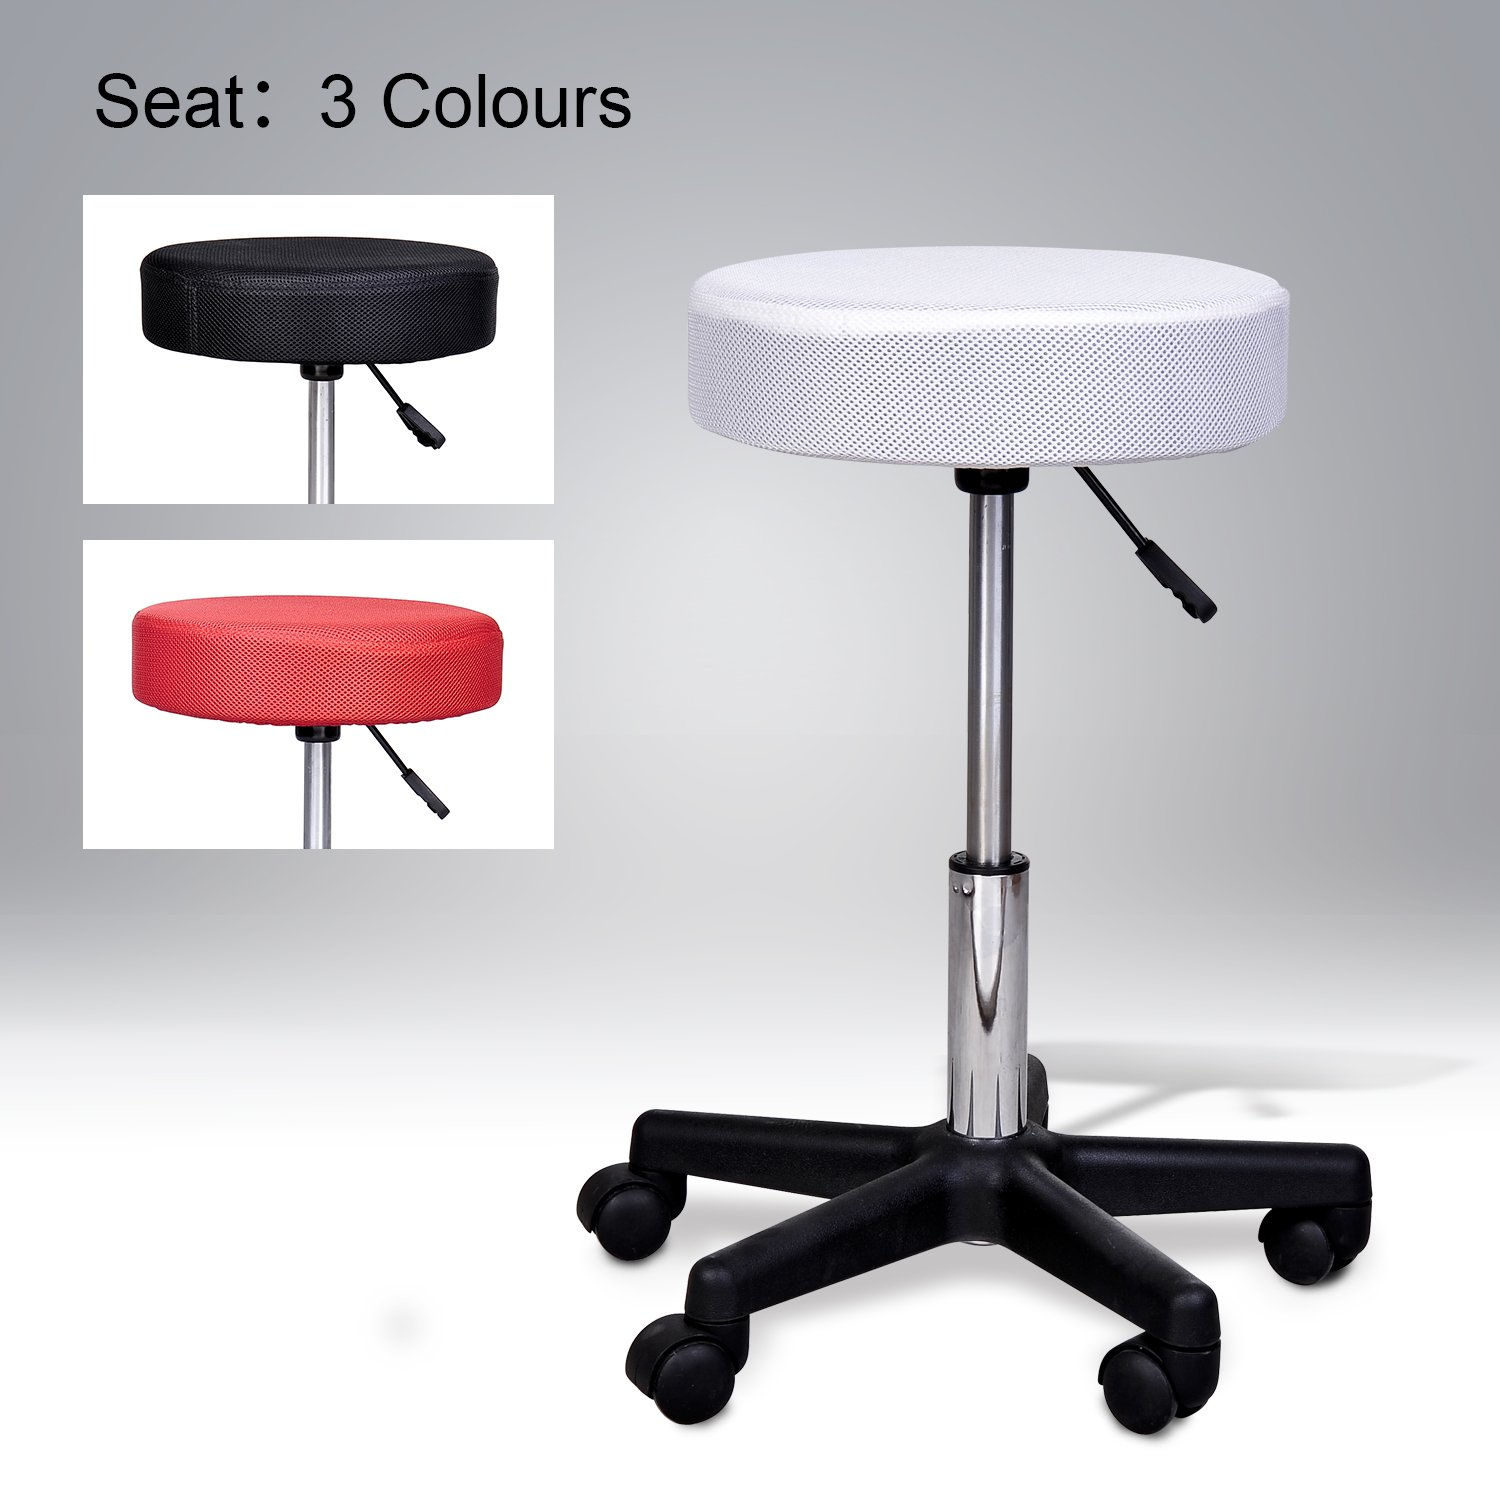 HOMCOM Swivel Salon Spa Stool with 3 Changeable Seat Covers, Red/White/Black Aosom Canada 71-0015